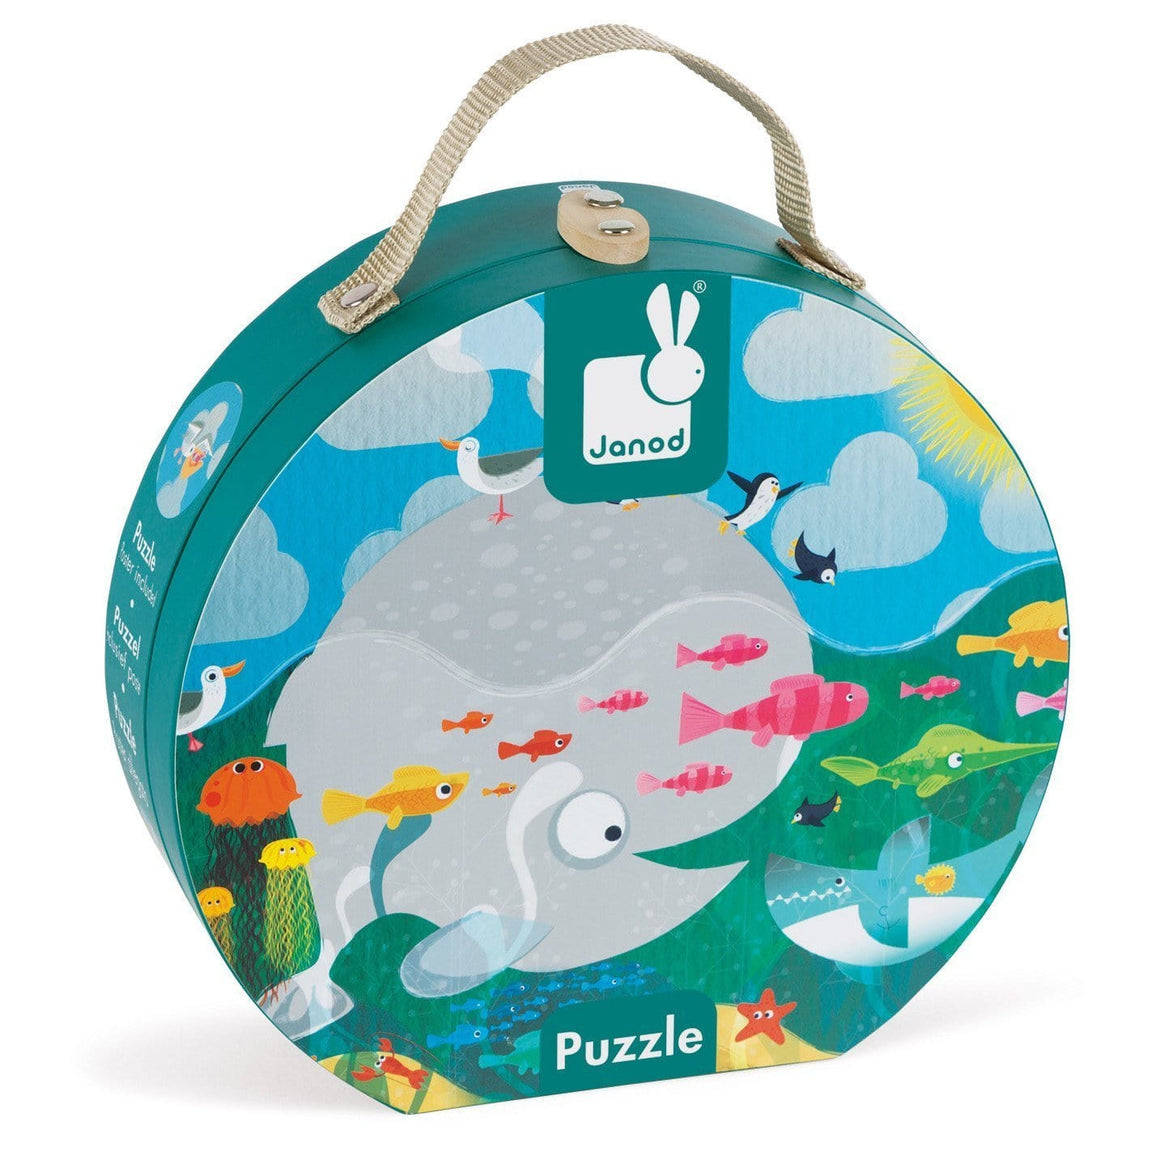 Janod France Hat Boxed 24 Pcs Puzzle (Ocean)法國品牌Janod 24片拼圖(海洋)